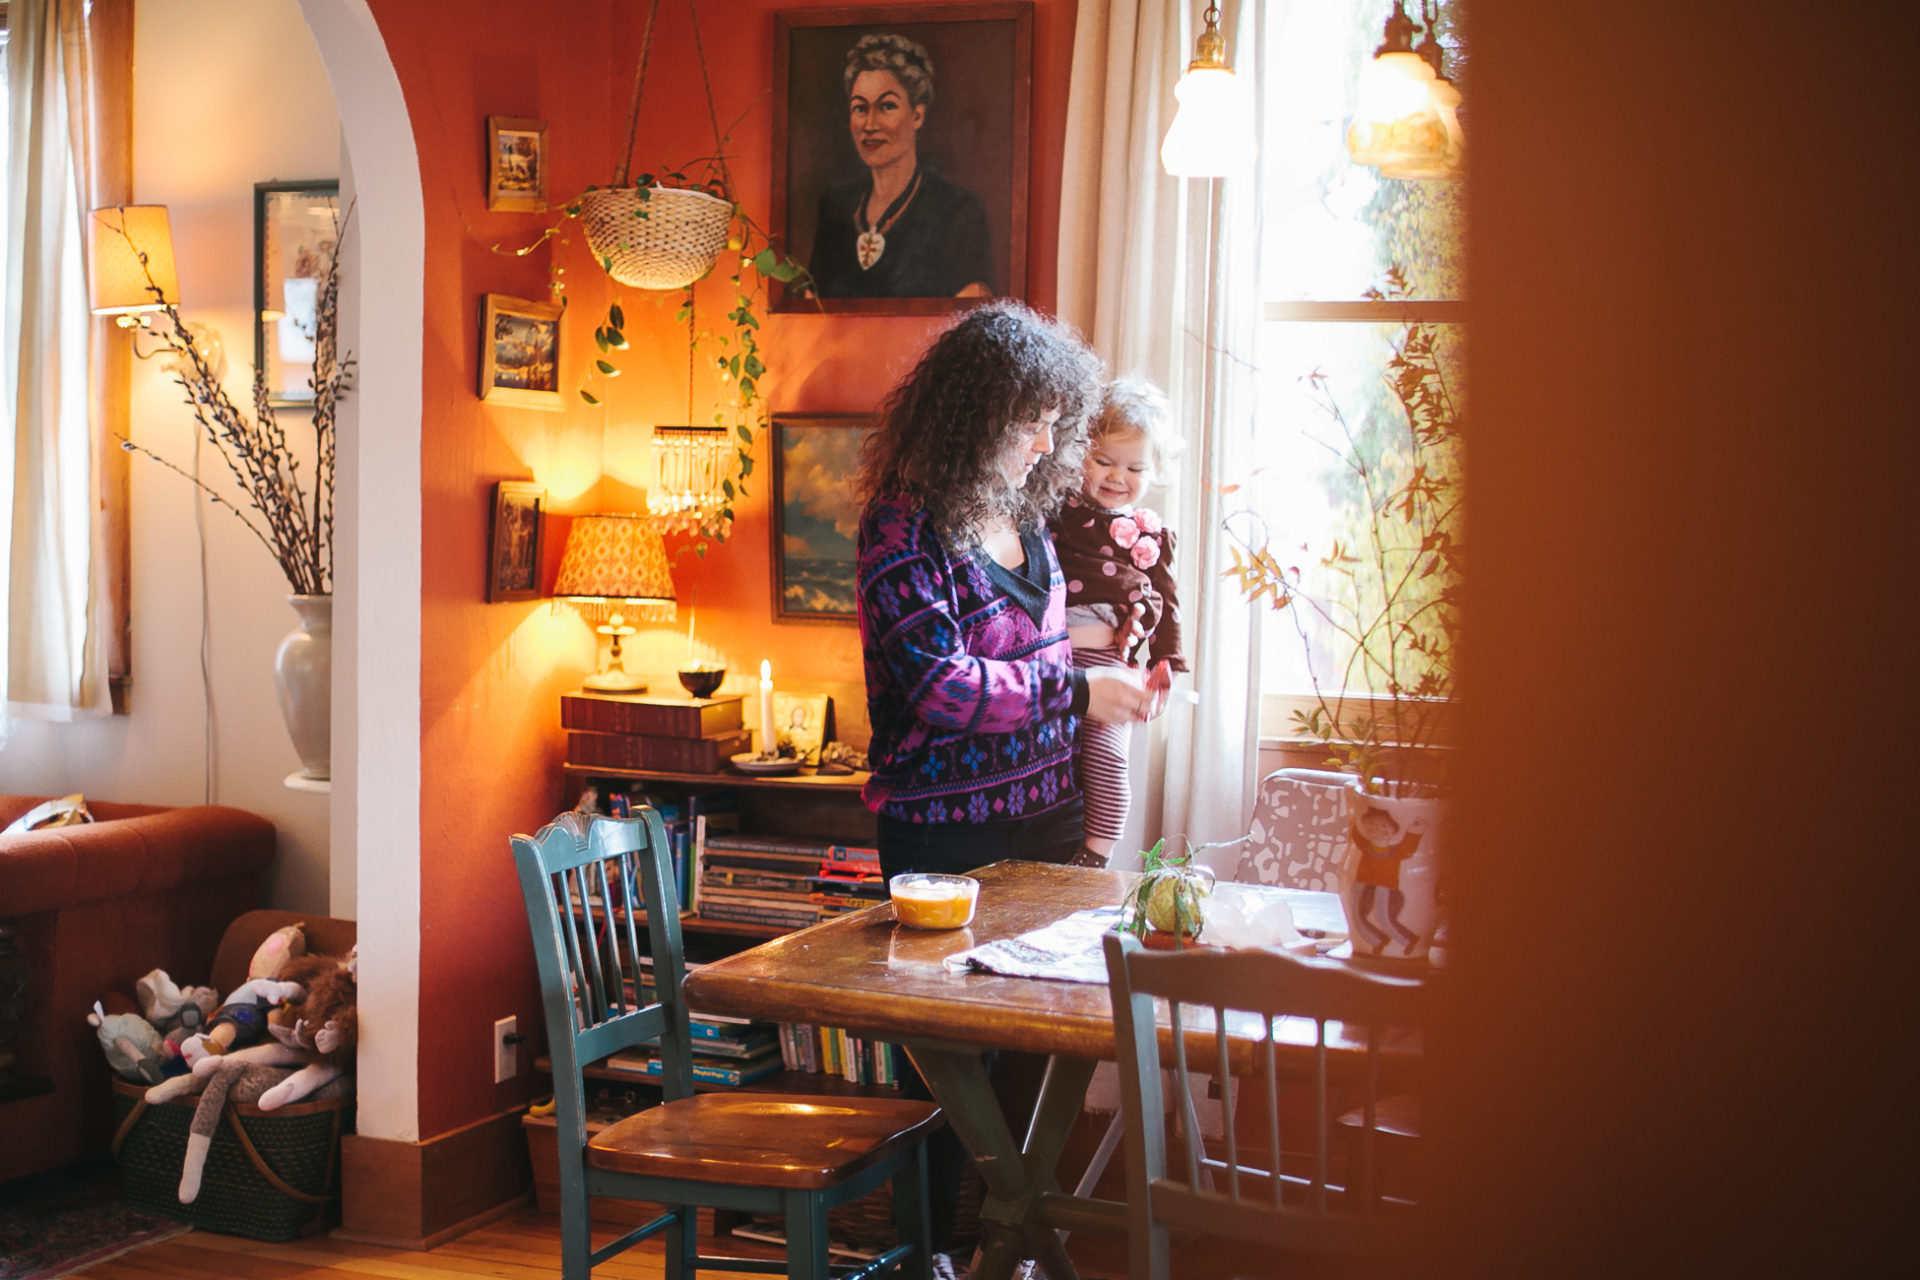 A mom preps lunch with her child in a documentary style photograph.